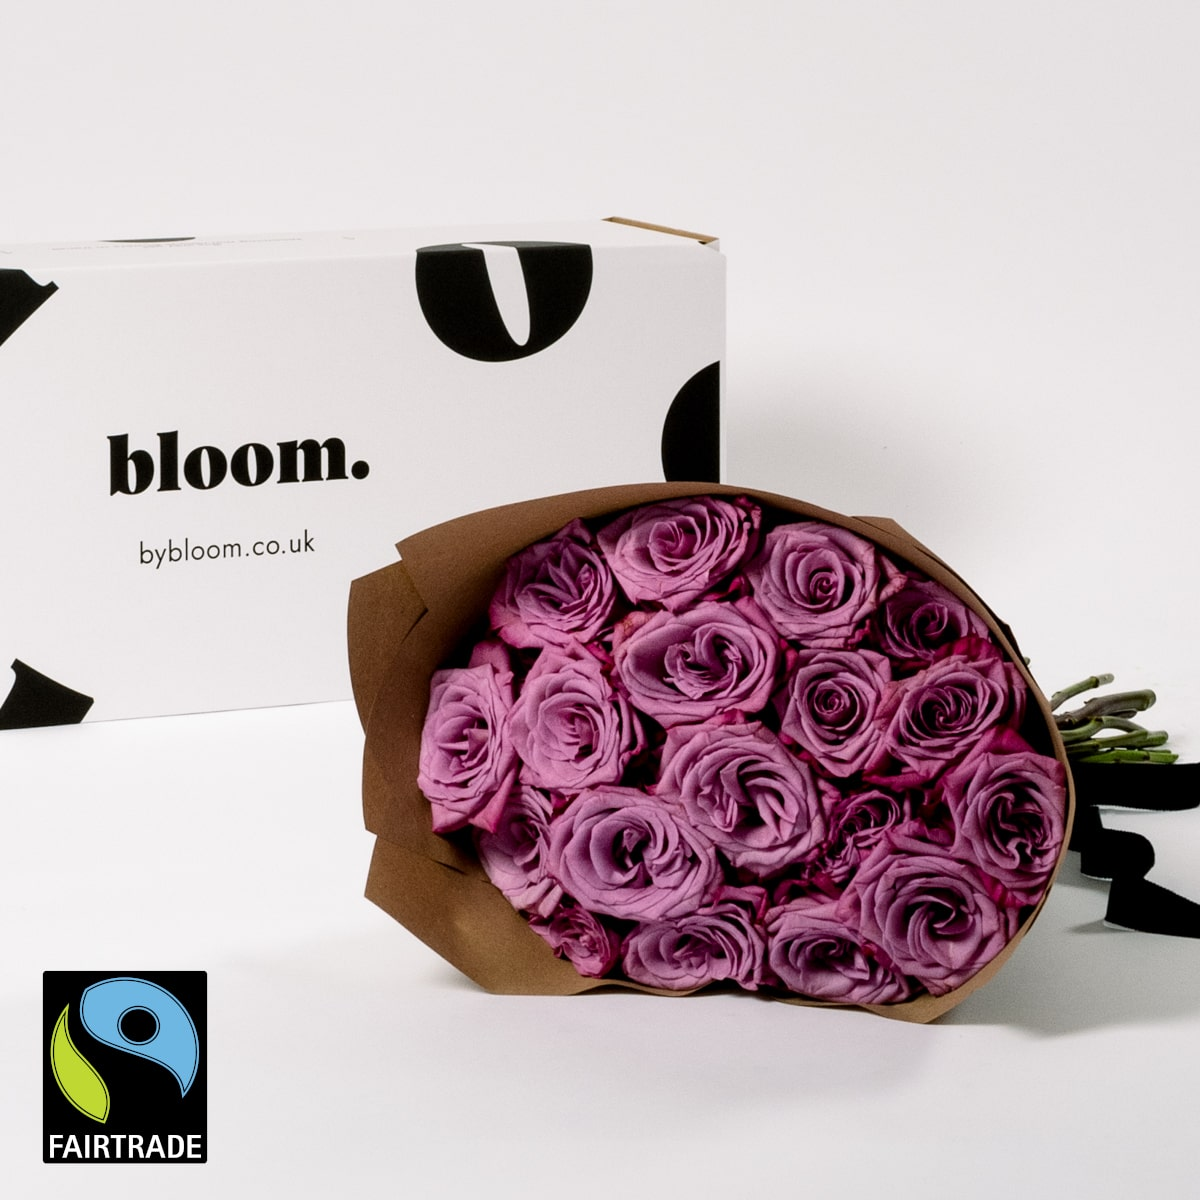 Bloom Flower Delivery | Fairtrade Muddled Grape Purple Roses